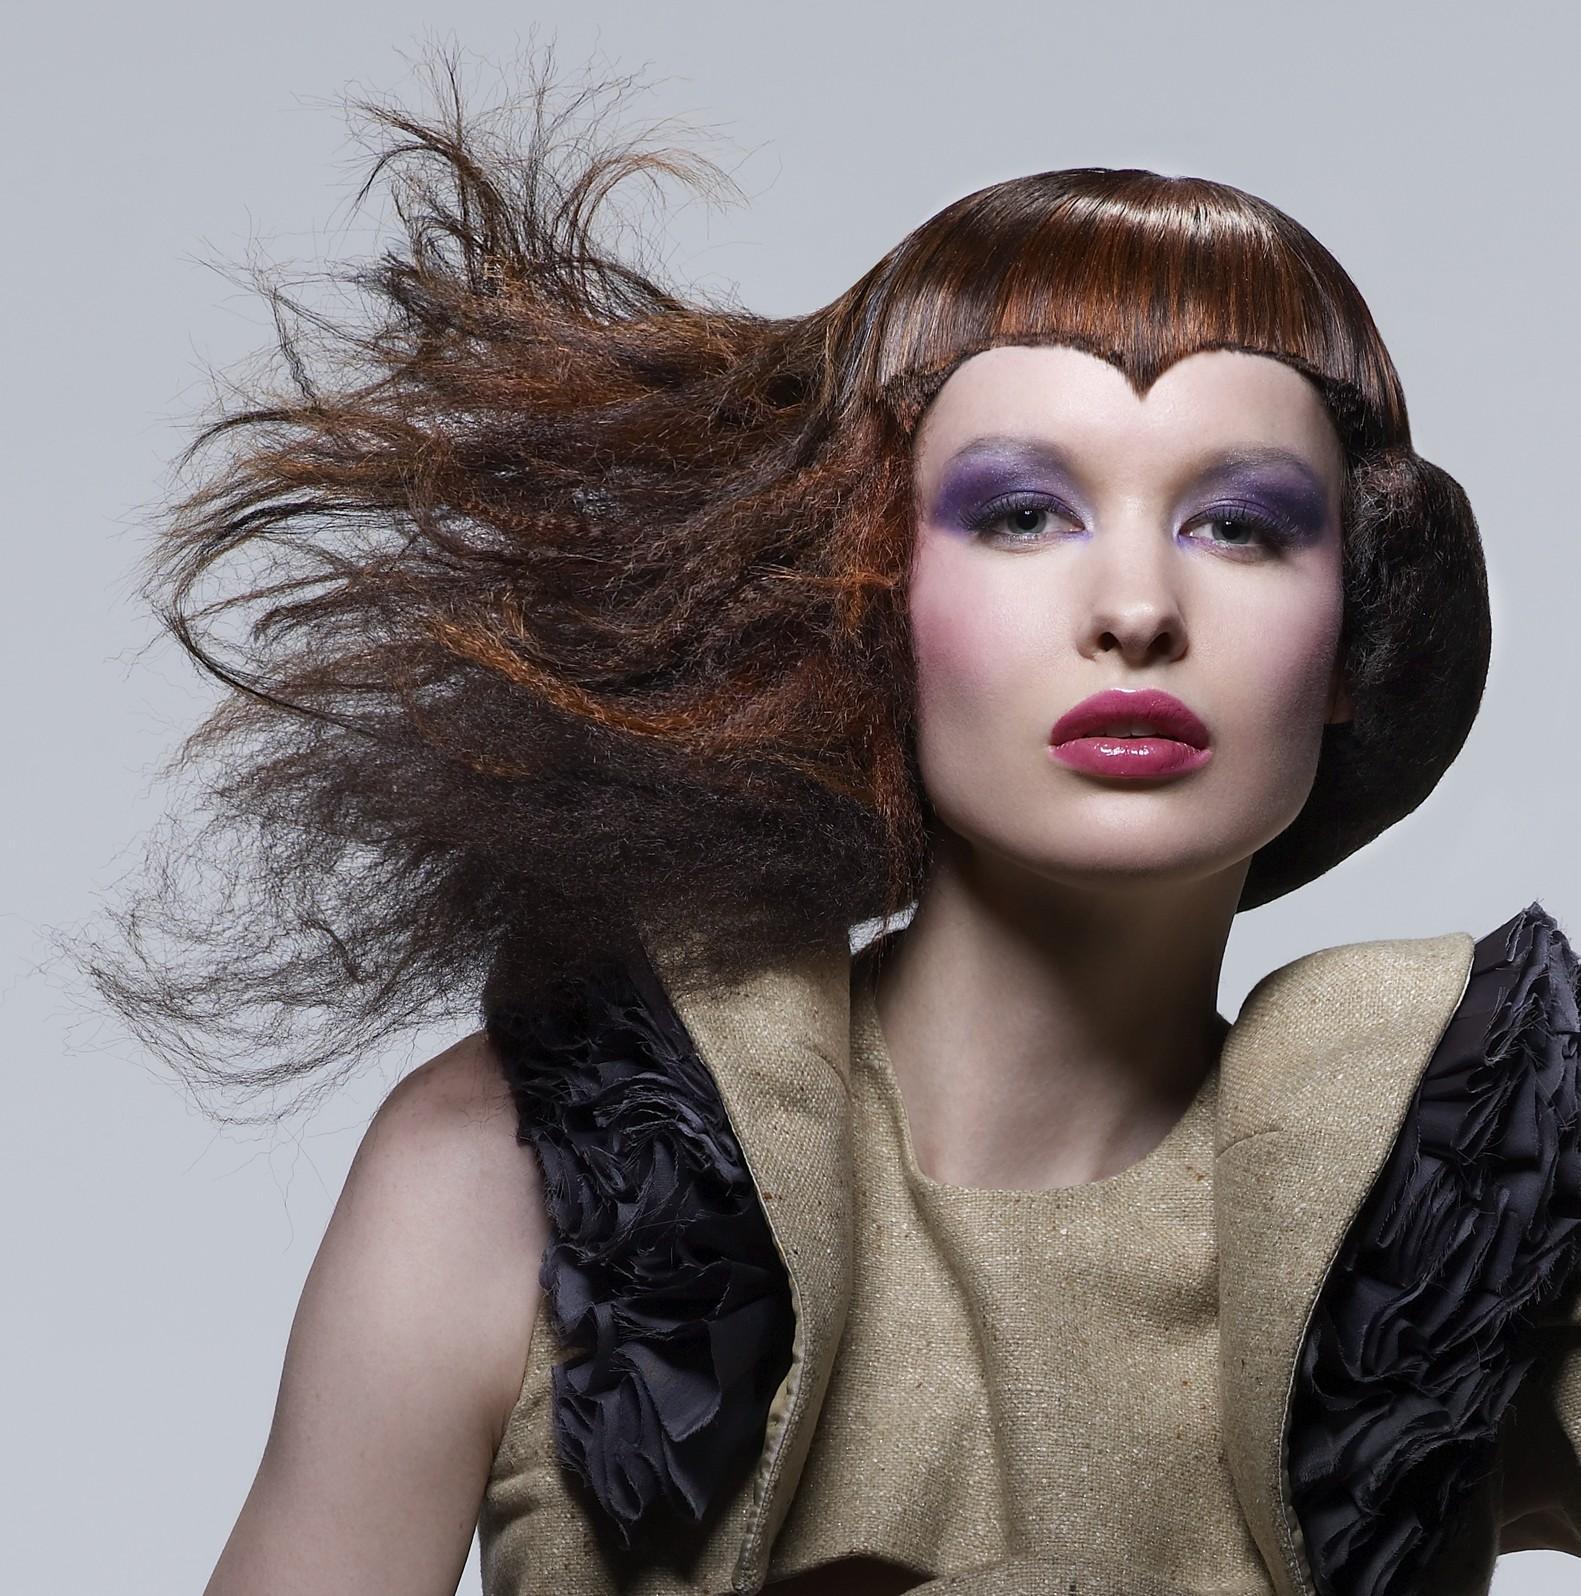 Shirley Gordon Hairstylist of the Year #2 - NAHA 2011